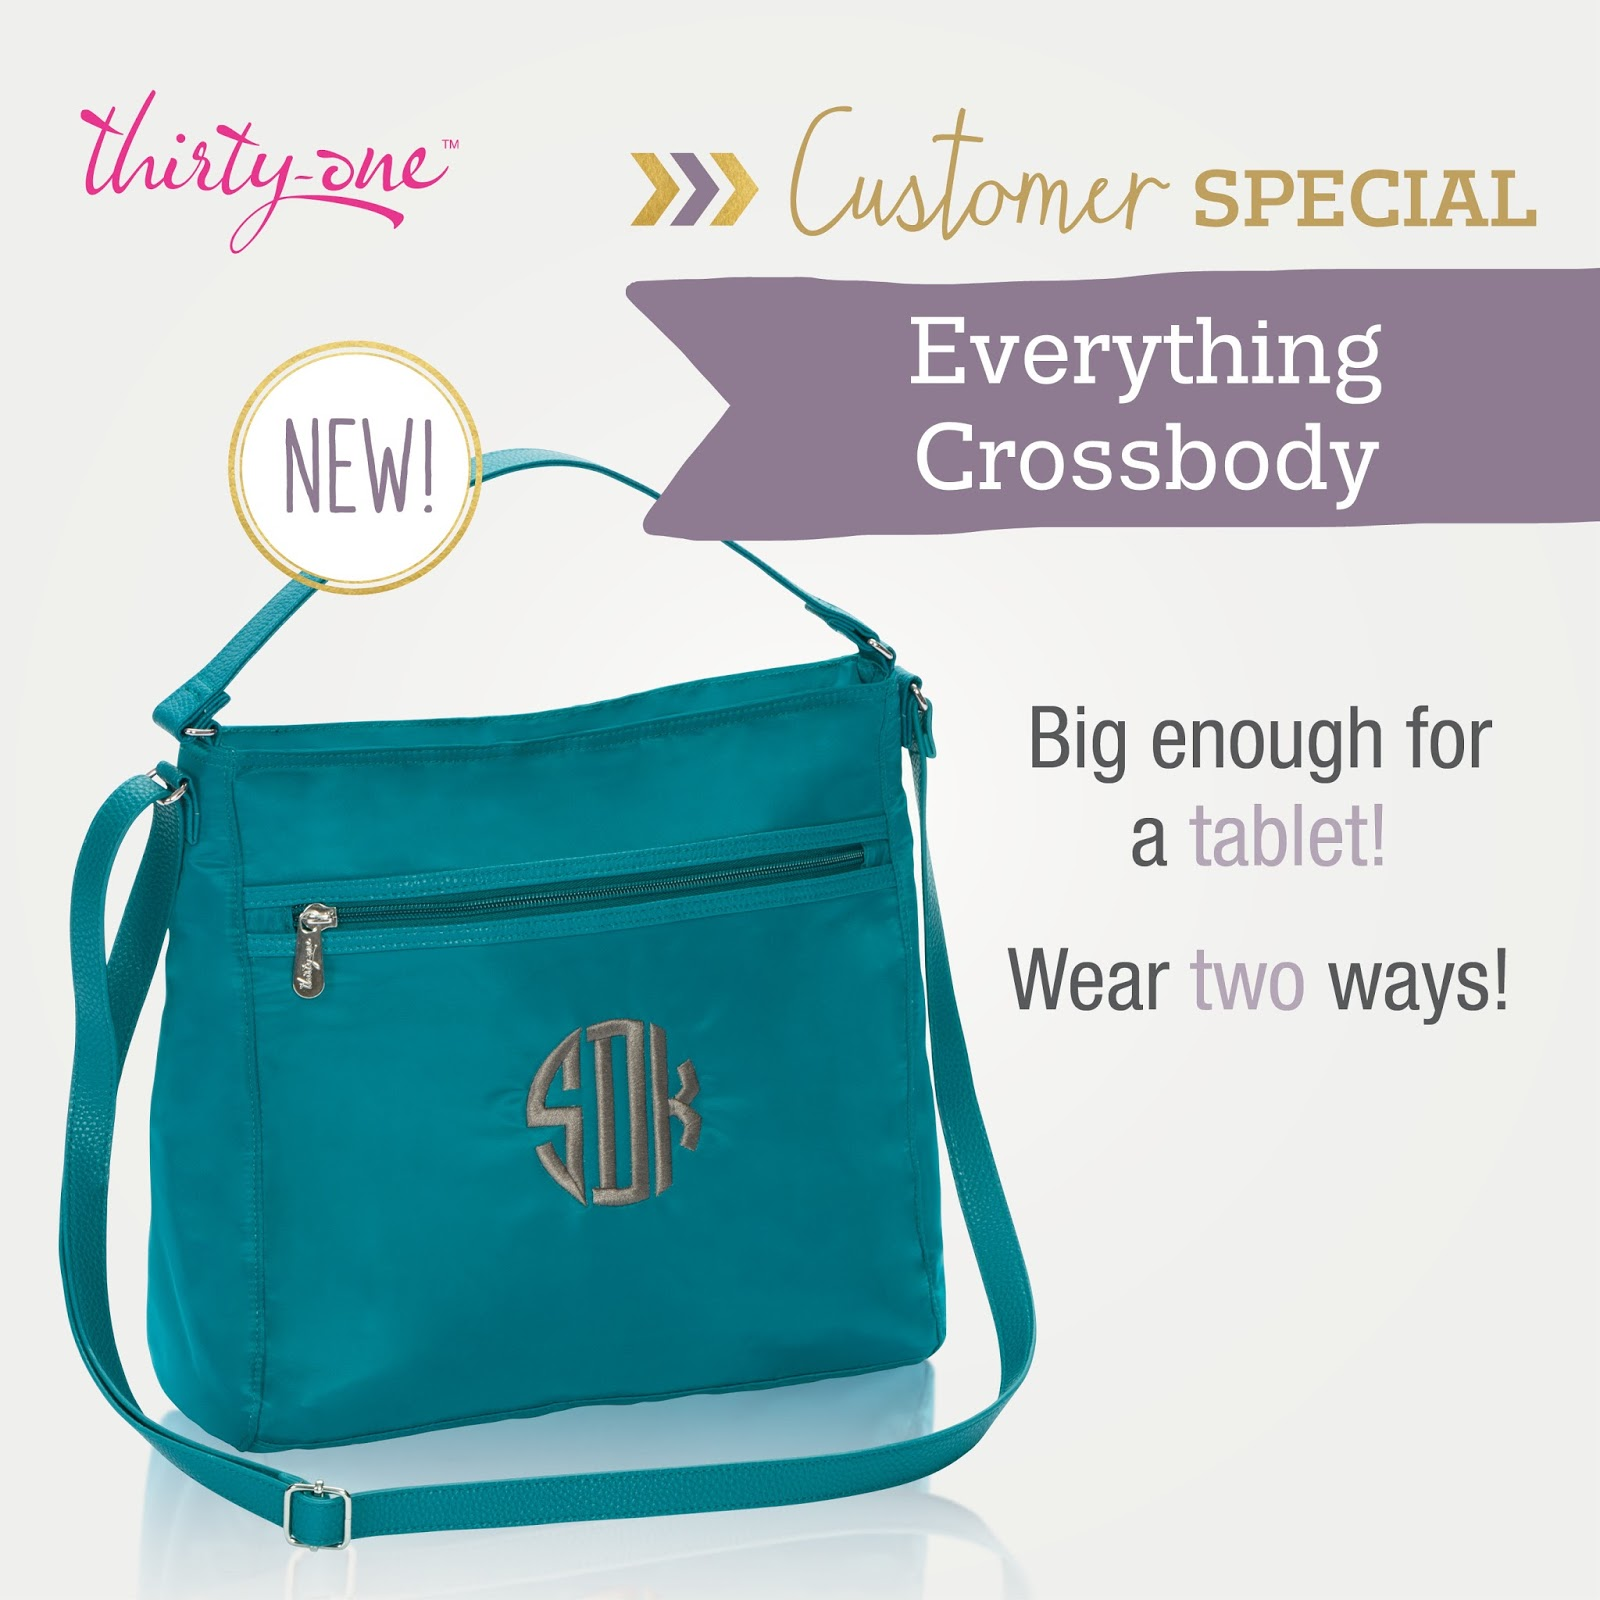 Thirty one november customer special 2014 - Two New Products Are Featured As The August Customer Special For Every 35 Spent You Can Choose An Everything Crossbody For Only 29 Reg